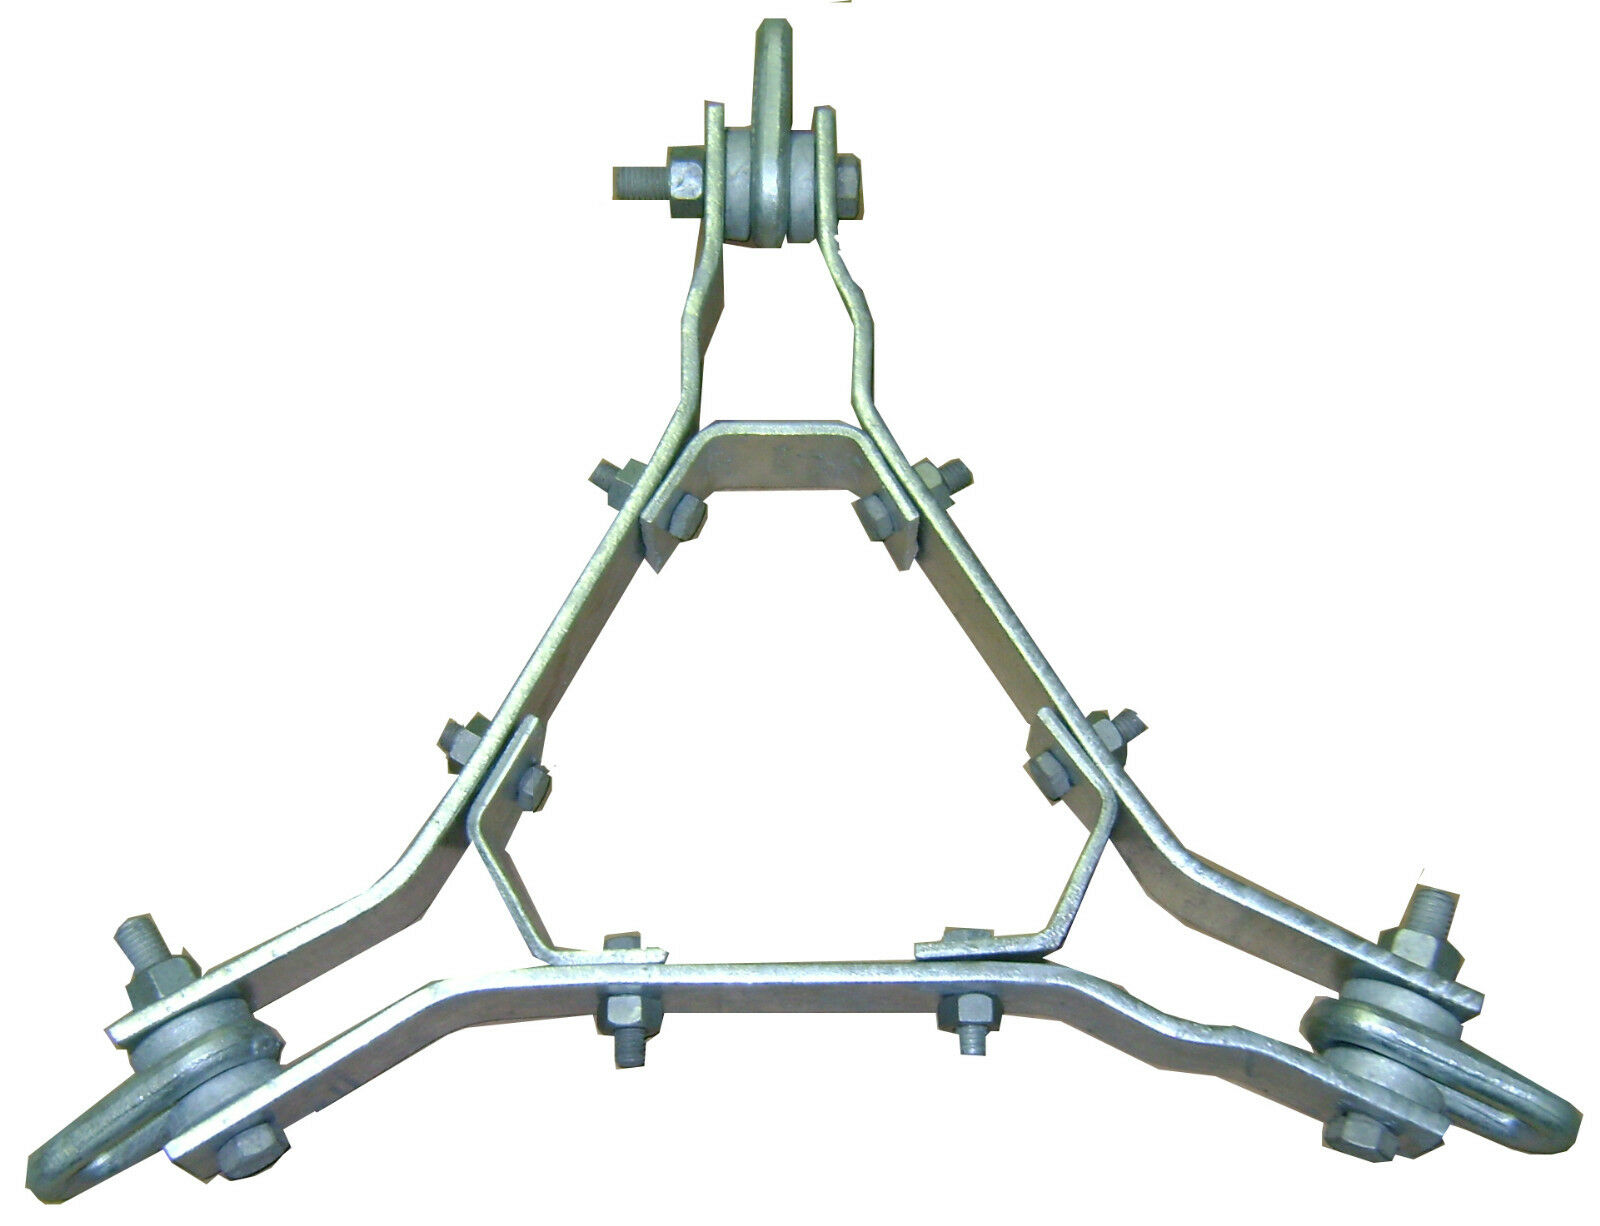 ROHN 25G Guy Bracket Assembly with Hardware - GA25GD - ROHN Tower . Available Now for 225.00